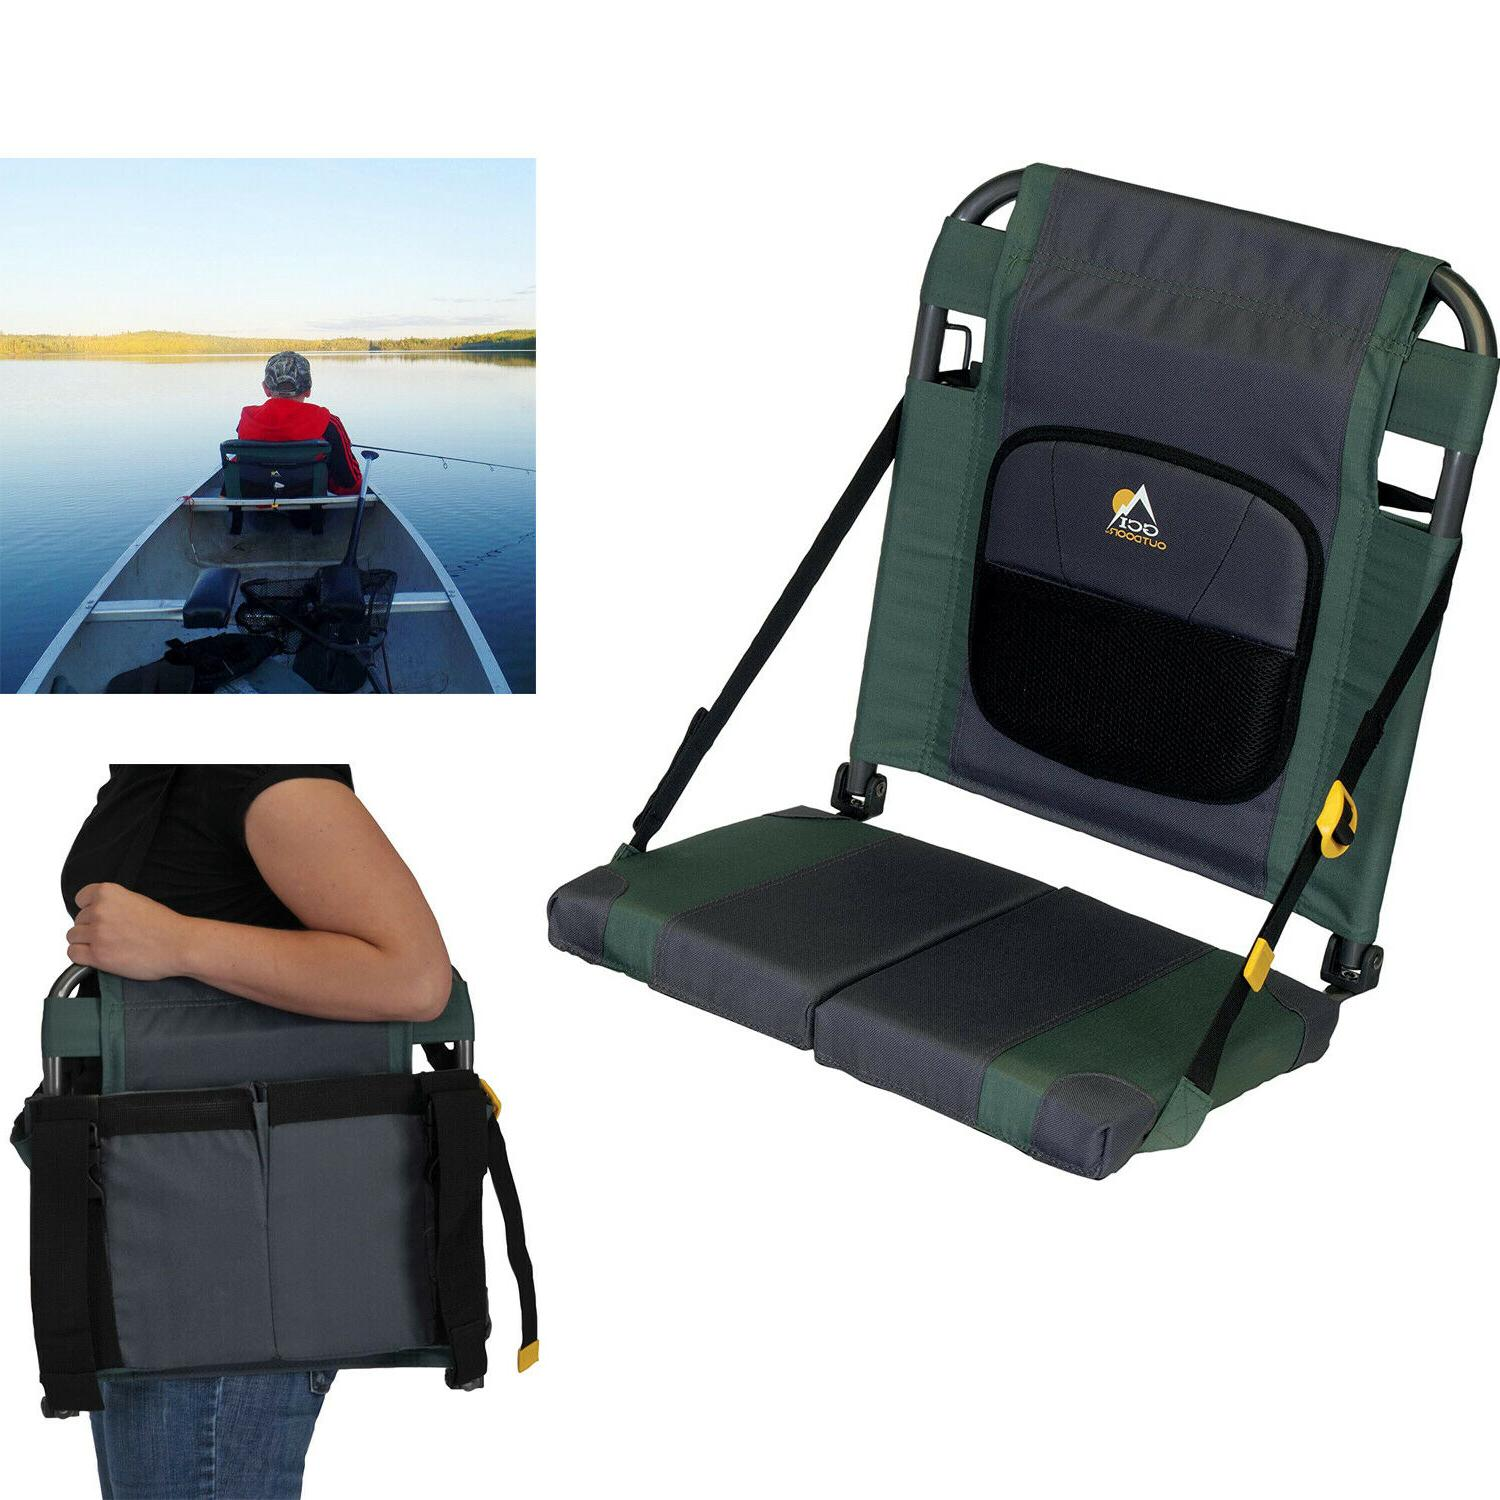 outdoor sitbacker adjustable canoe seat with back